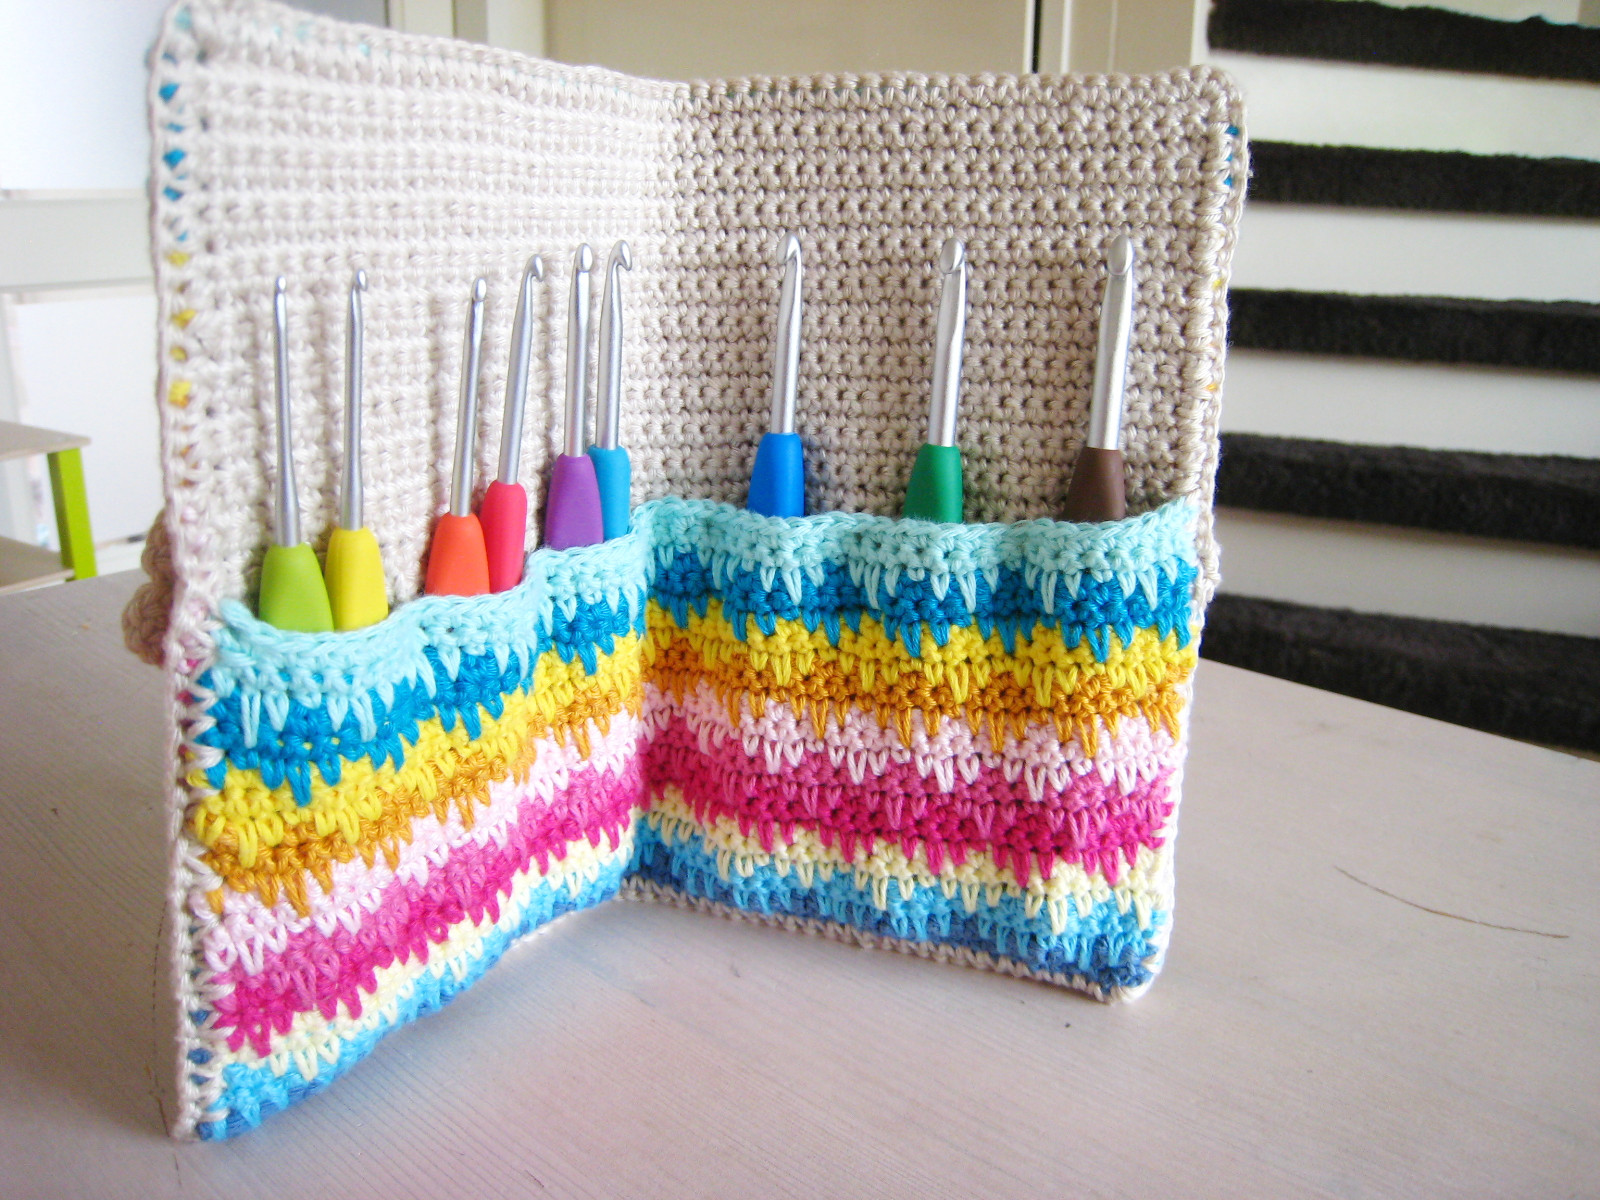 Crochet Hook organizer Inspirational Oh Milly Crochet Hook Case Of Brilliant 43 Photos Crochet Hook organizer